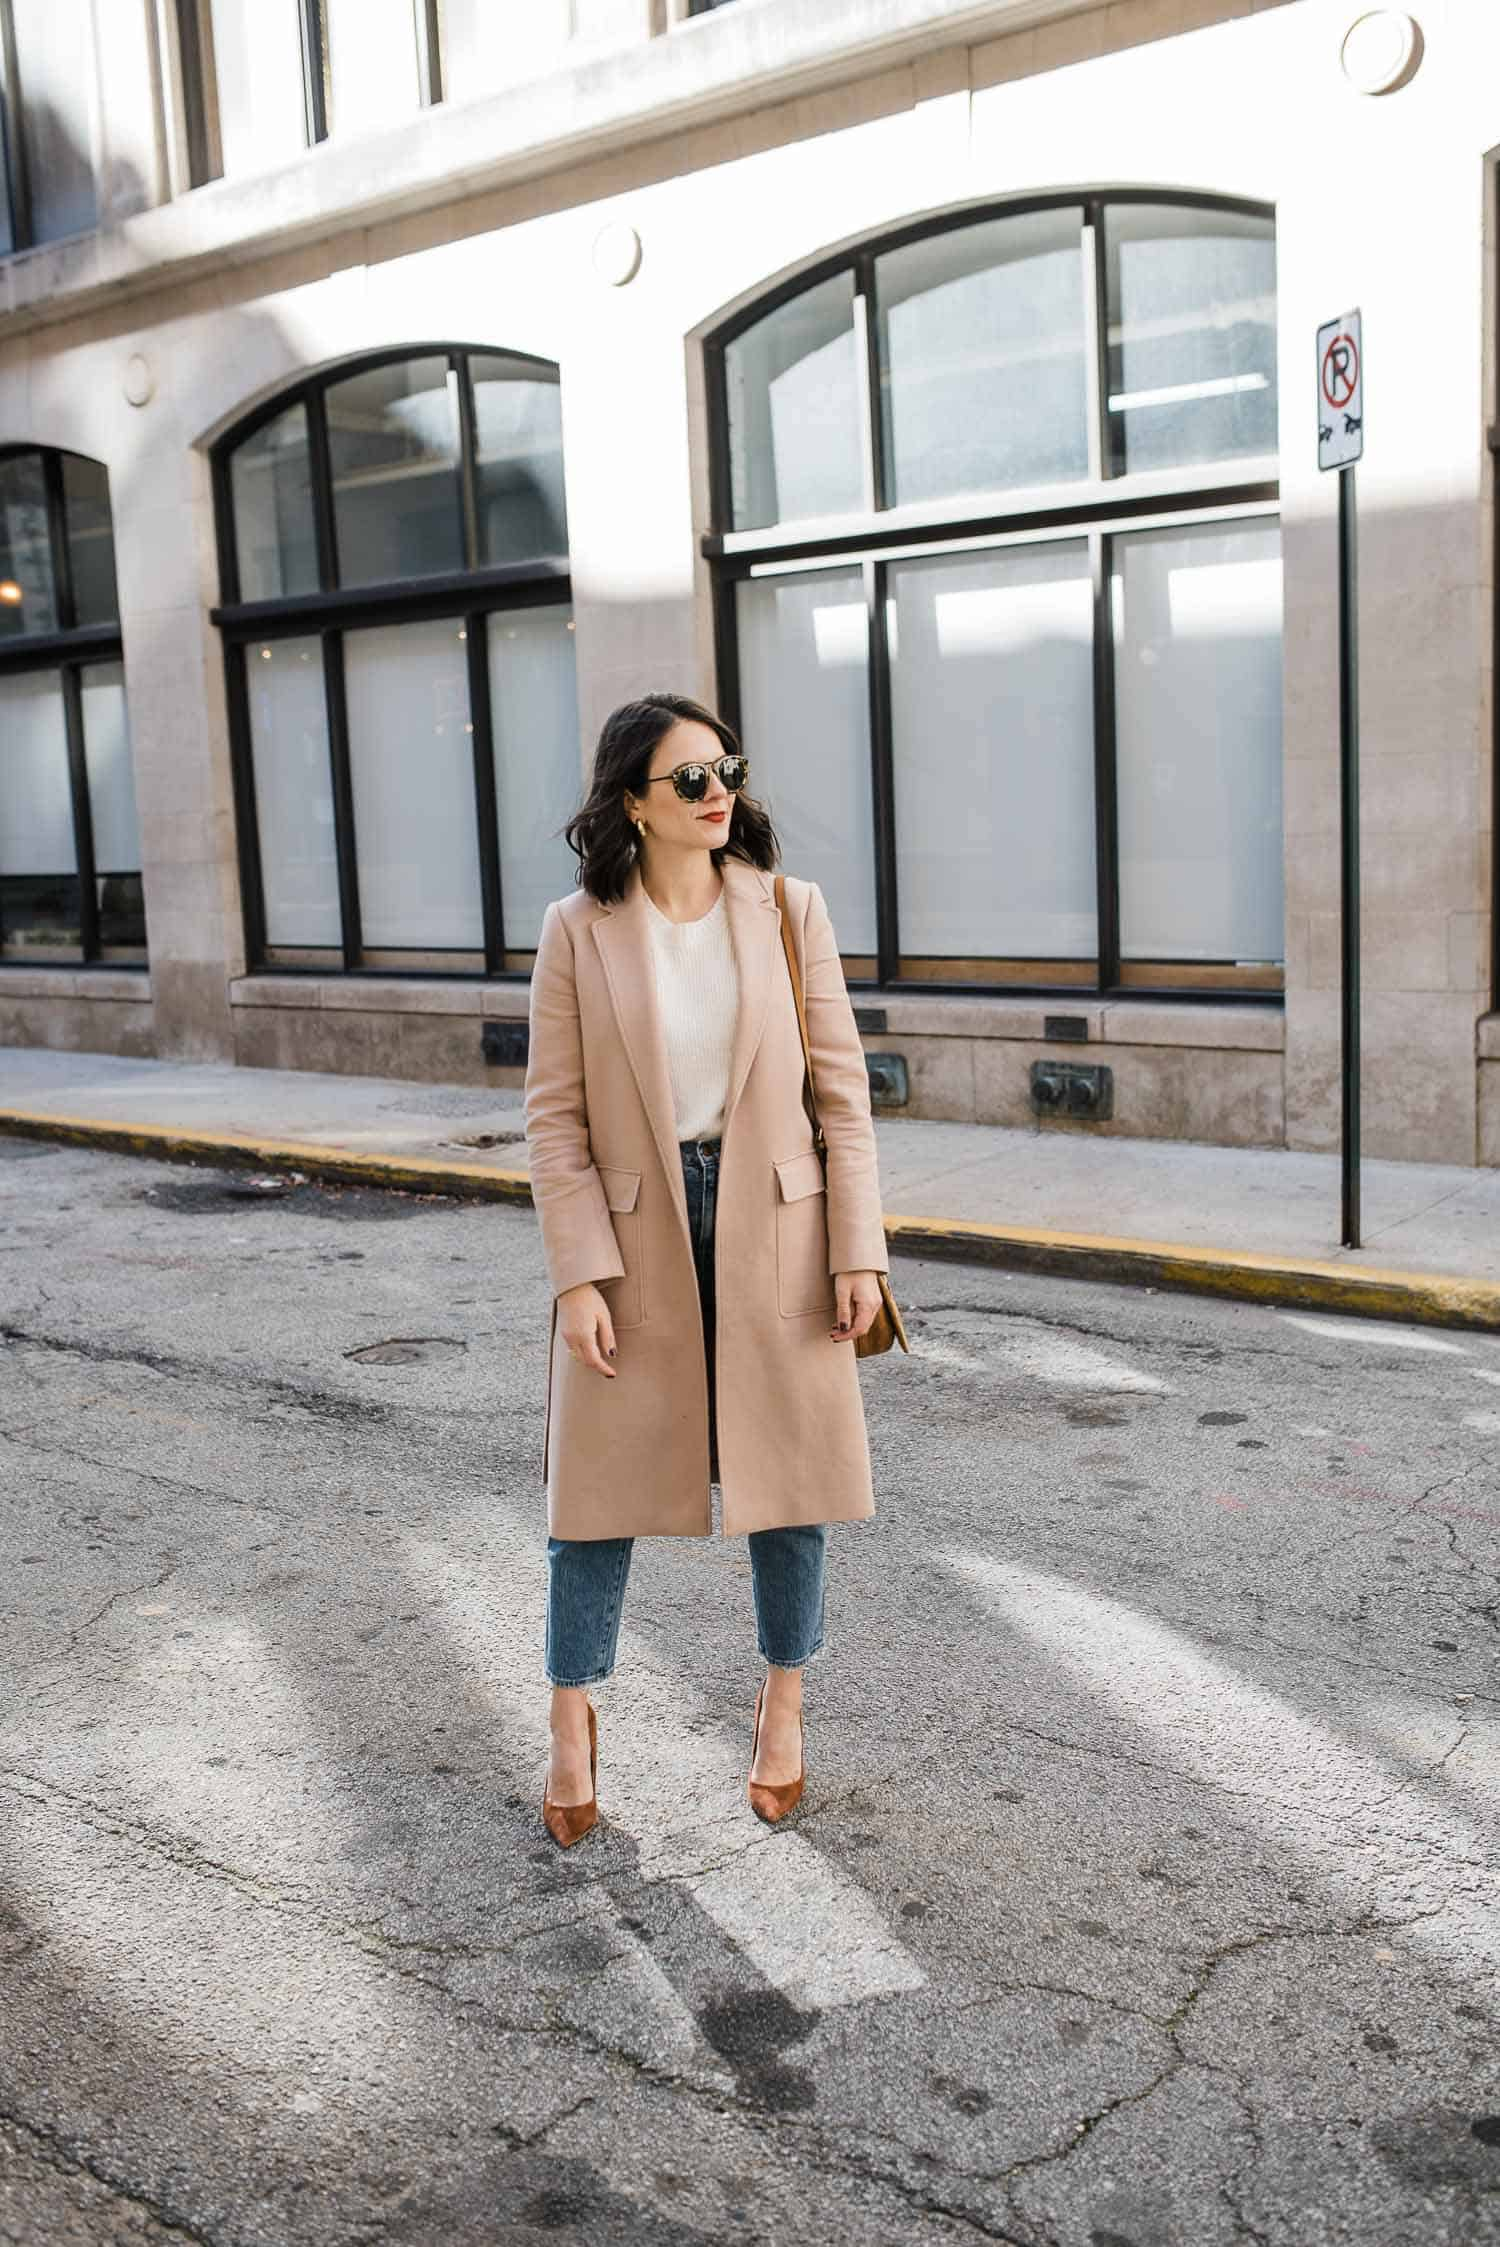 The Best Neutrals For Winter